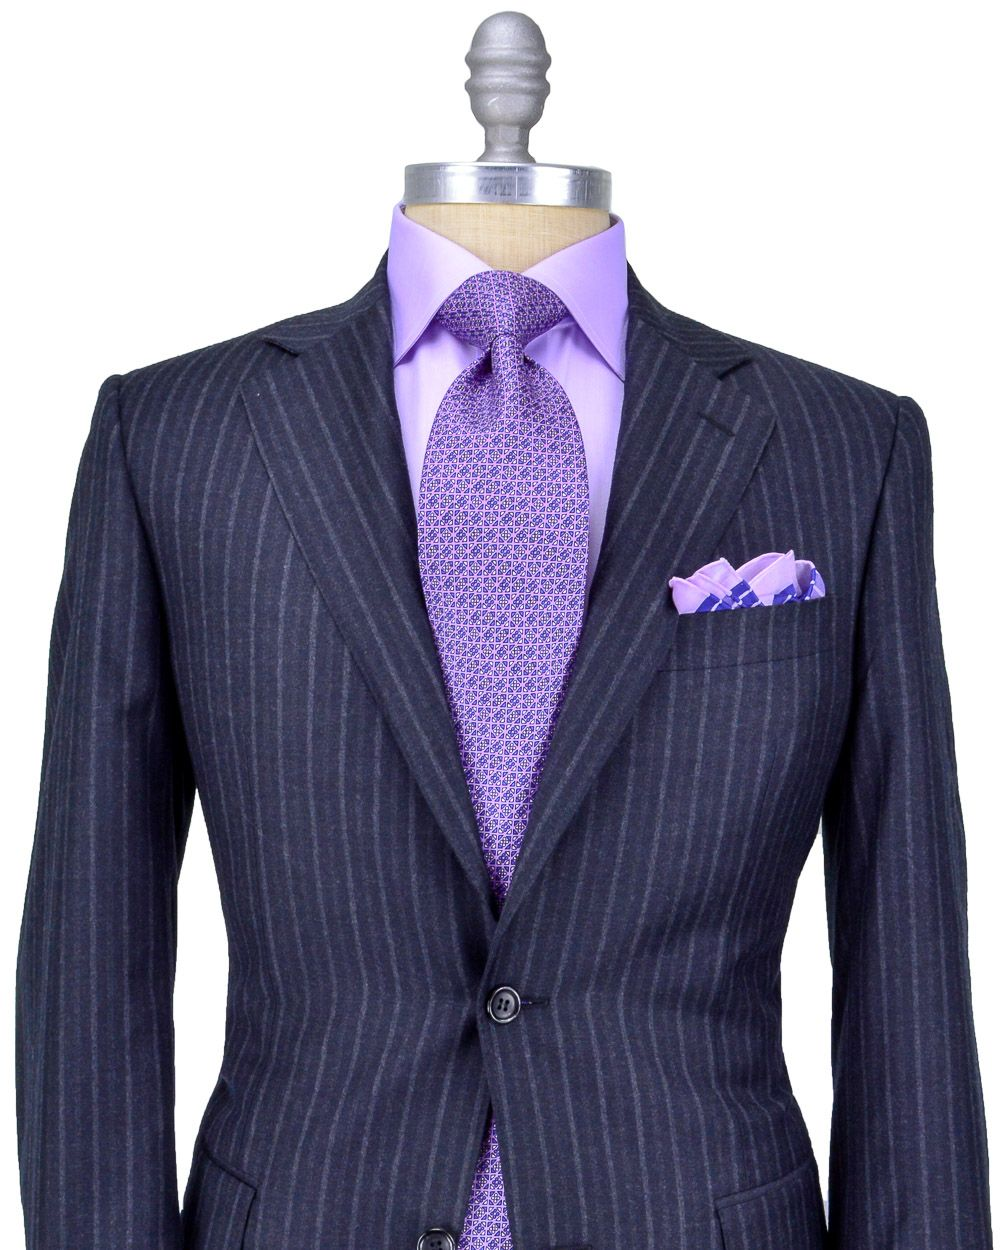 Commit error. Mens style with pin striped suits